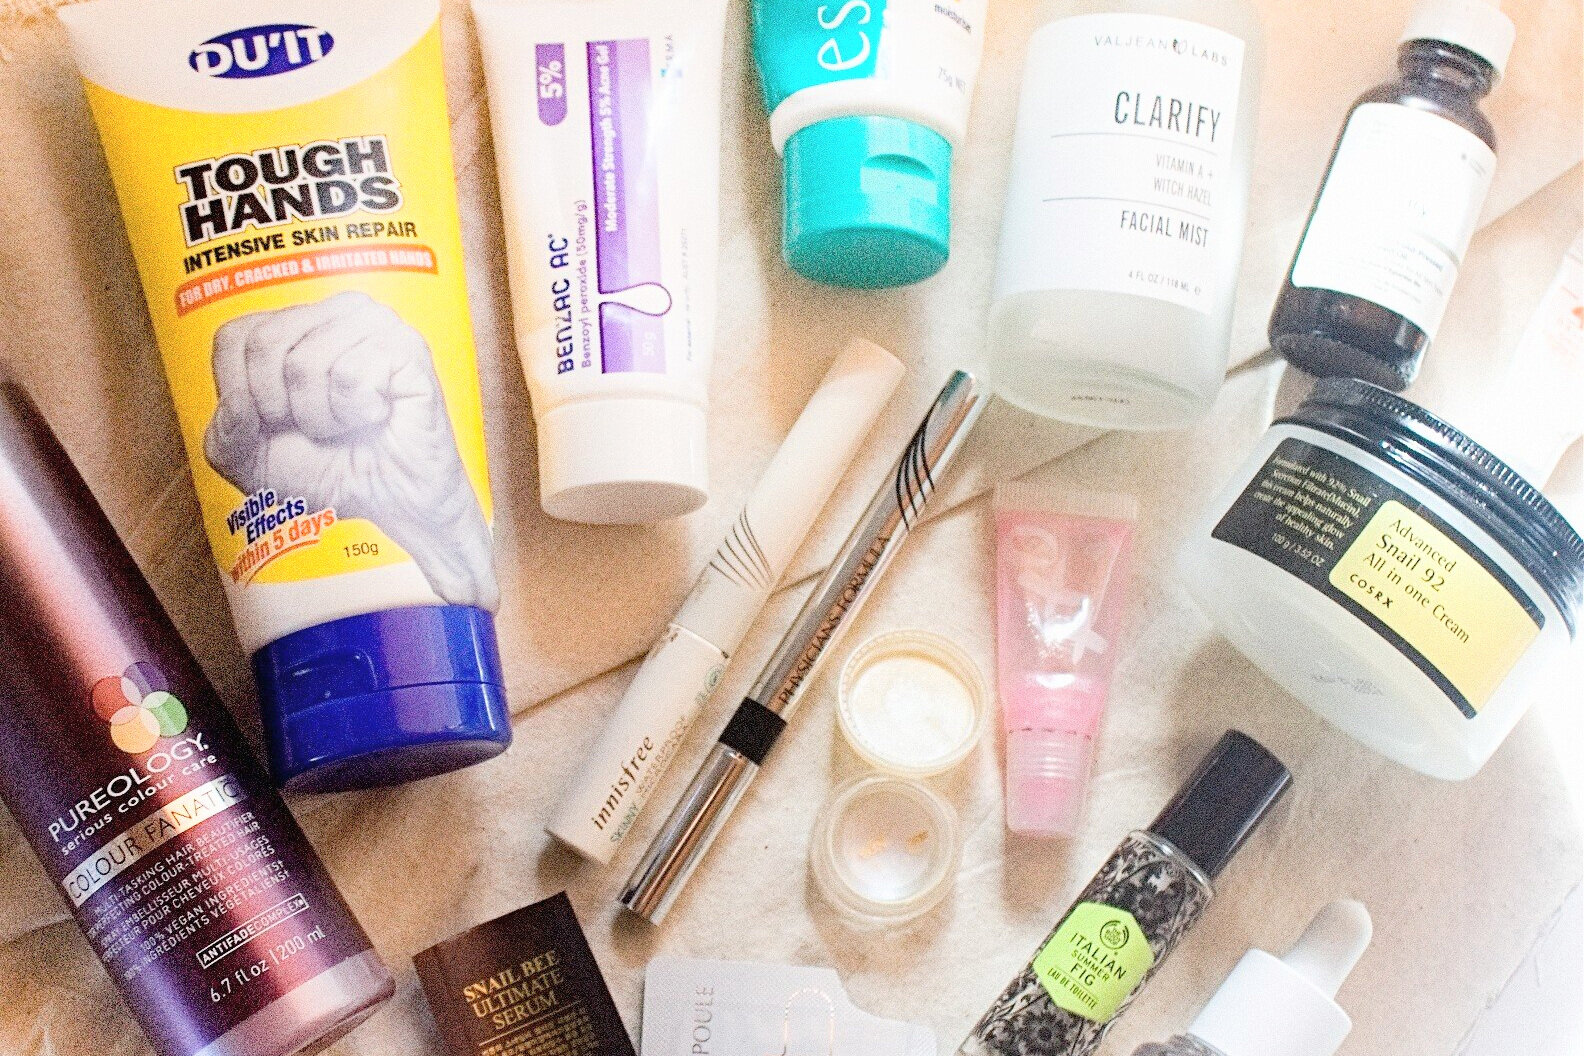 skincare+makeup+beauty+haircare+fragrance+empties